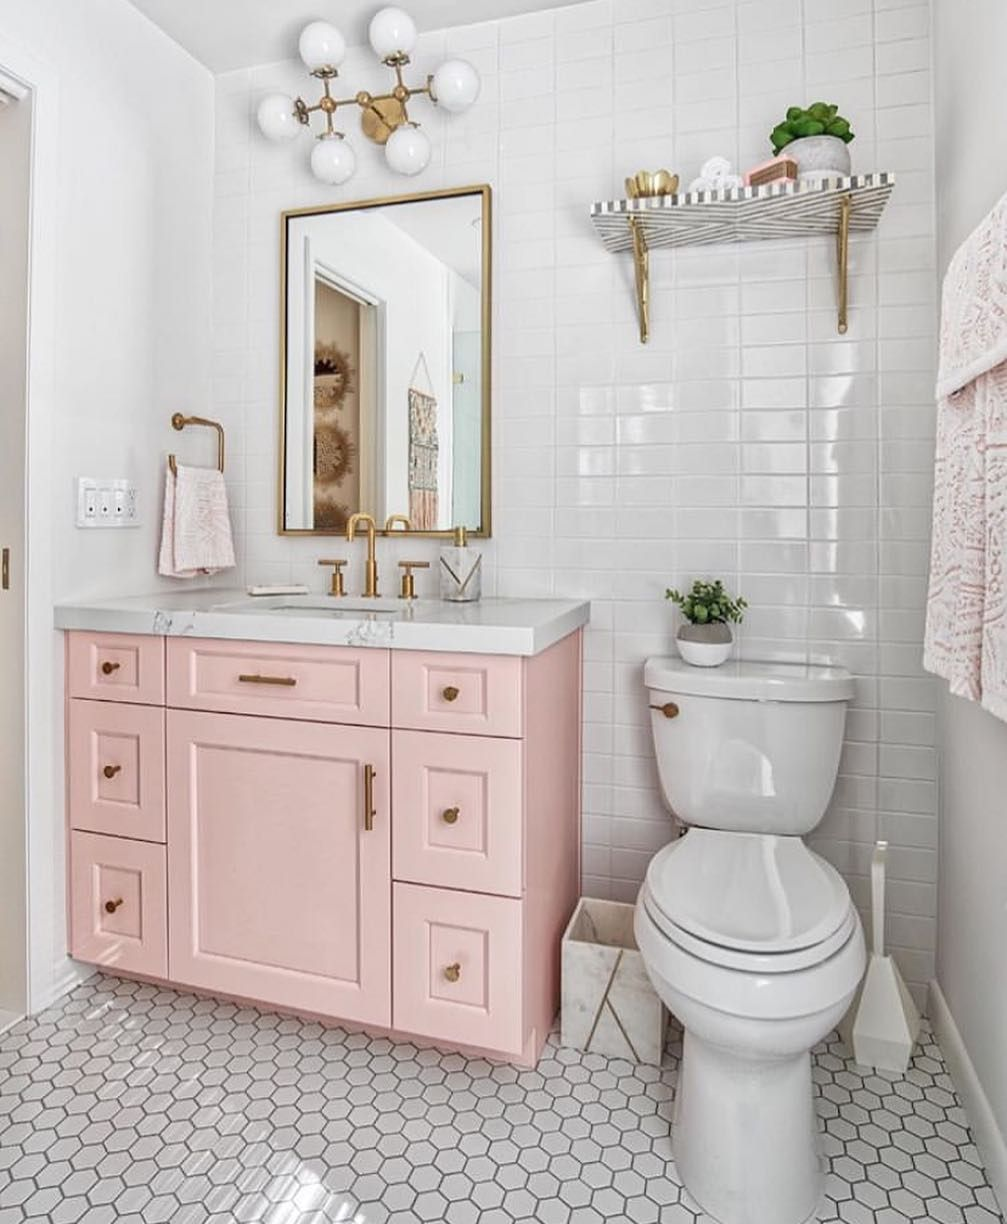 Interior Design Decor Ideas On Instagram Pink Vanity Gold Accents Such A Pretty Combo Who S With M Trendy Bathroom Gorgeous Bathroom Bathroom Decor